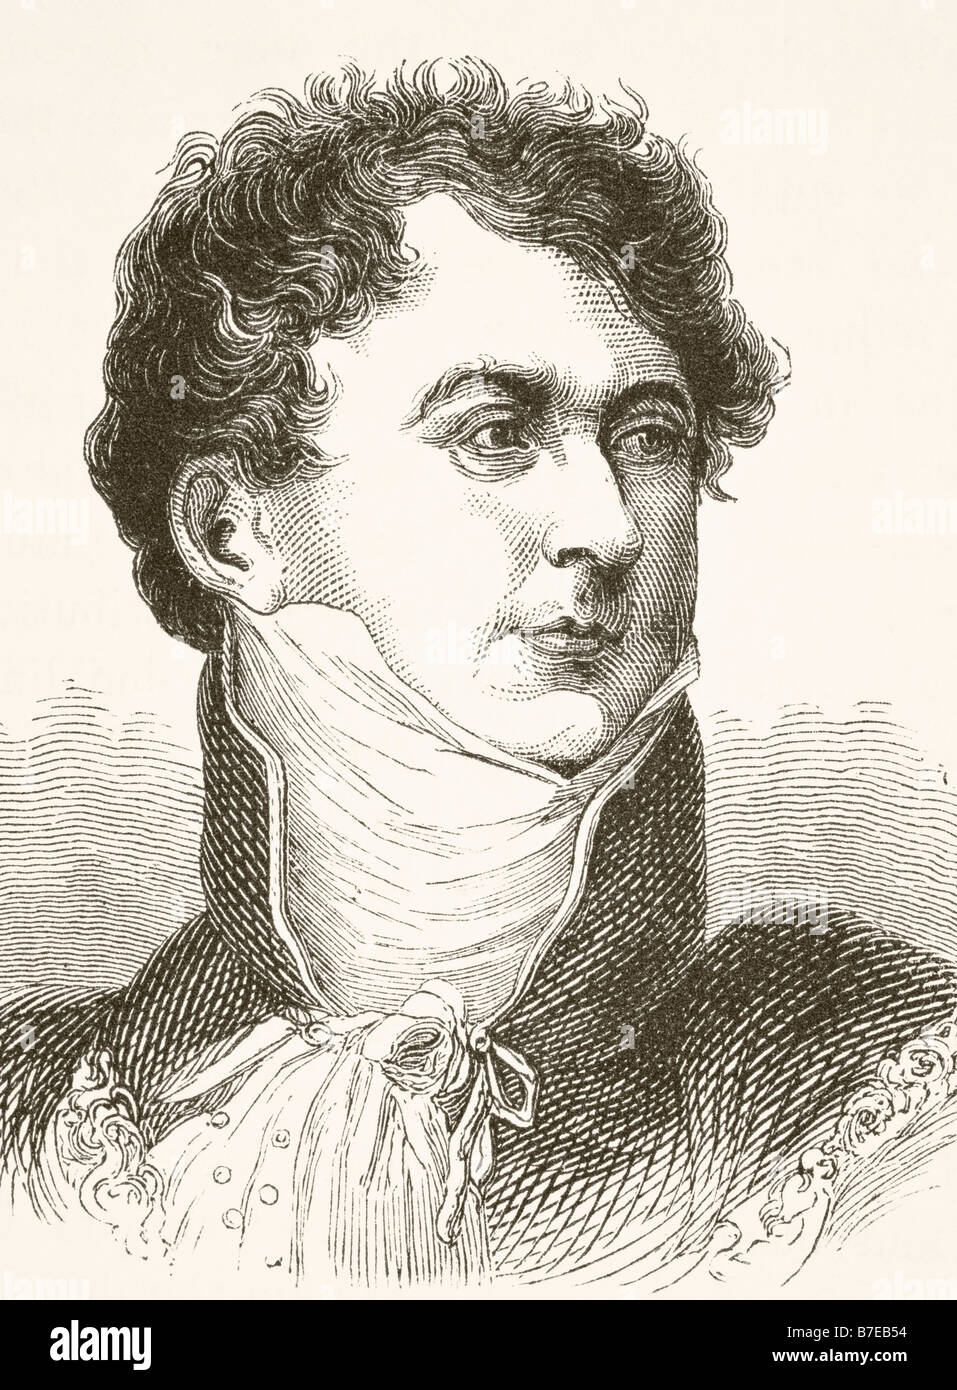 George IV 1762 1830 King of Great Britain and Ireland and King of Hanover - Stock Image